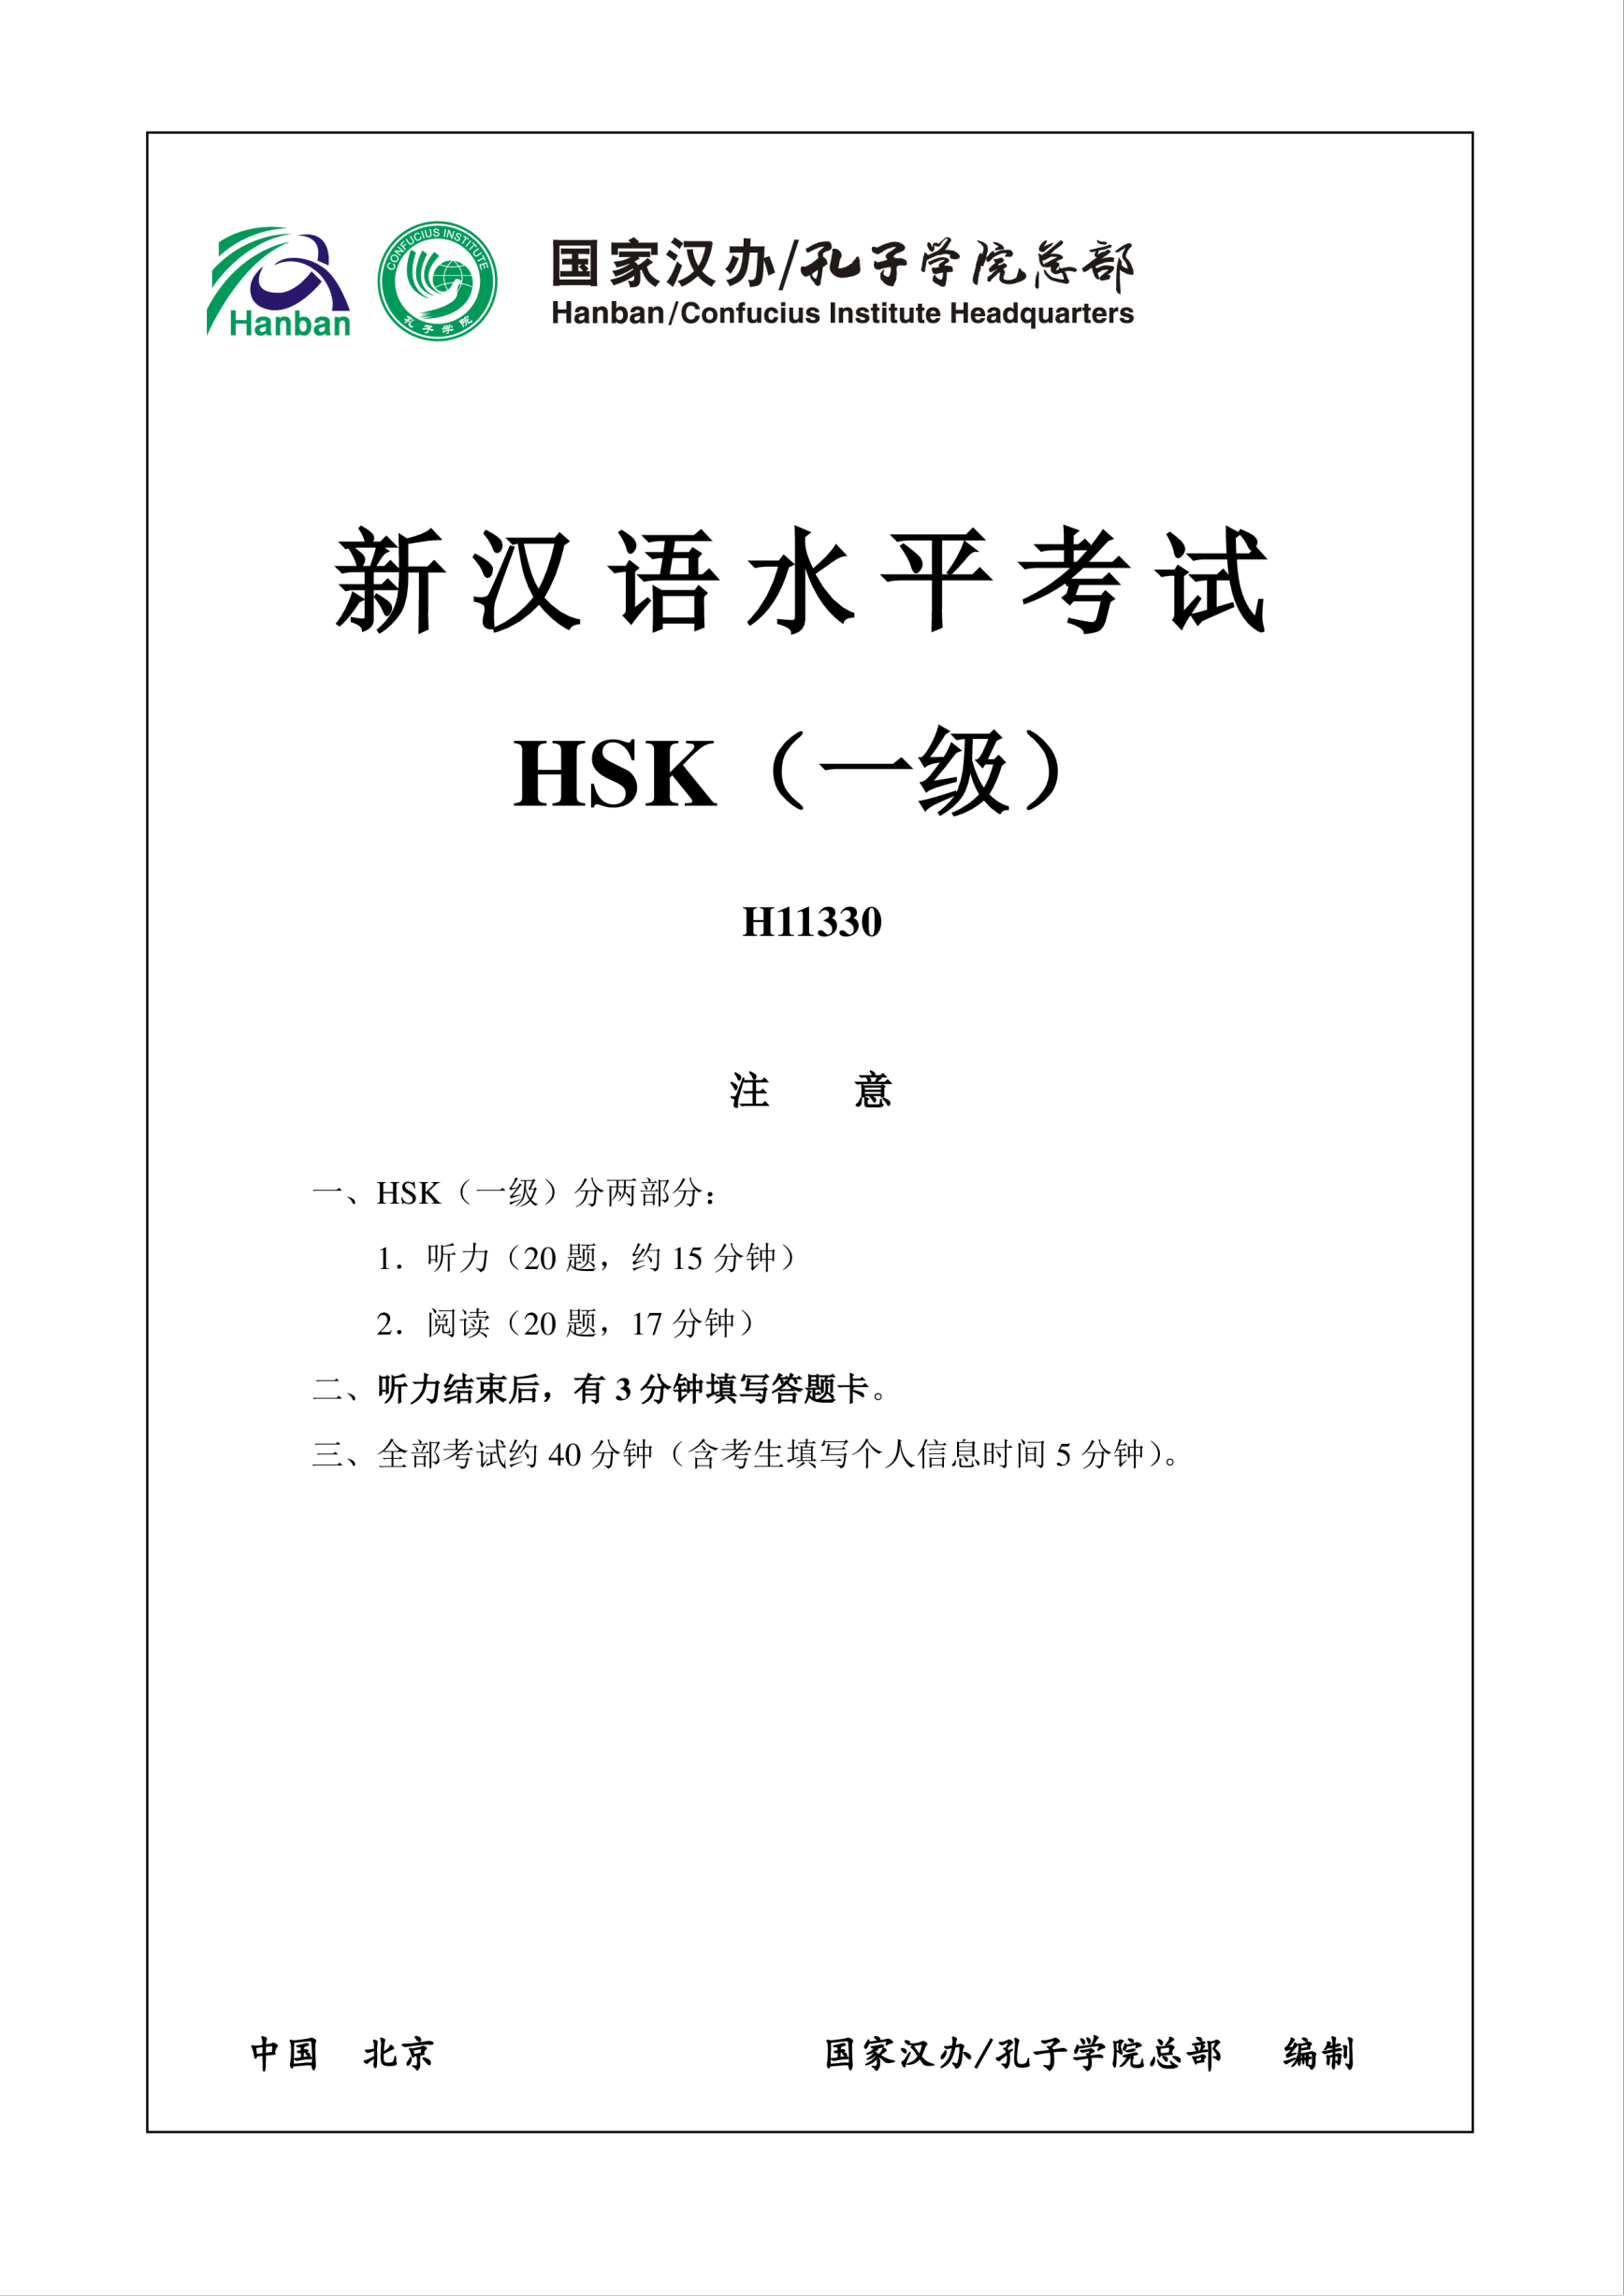 template preview imageHSK 1 Chinese Exam including Answers HSK1 H11330